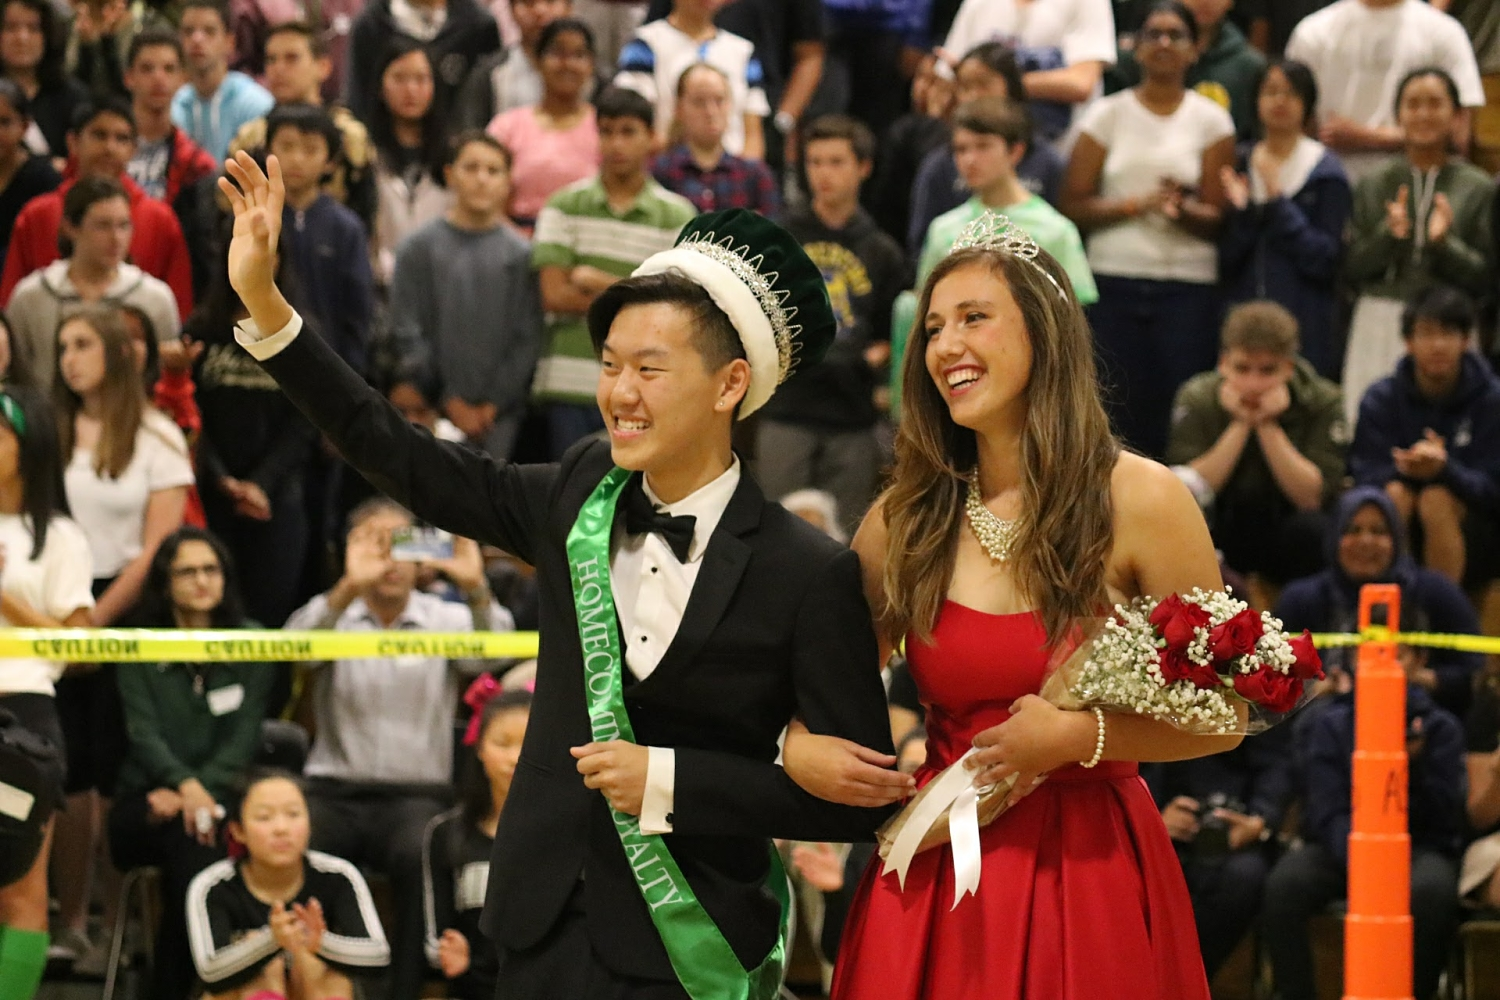 Seniors Simon Lee and Kristina Claras take in their win after being announced Homecoming King and Queen.